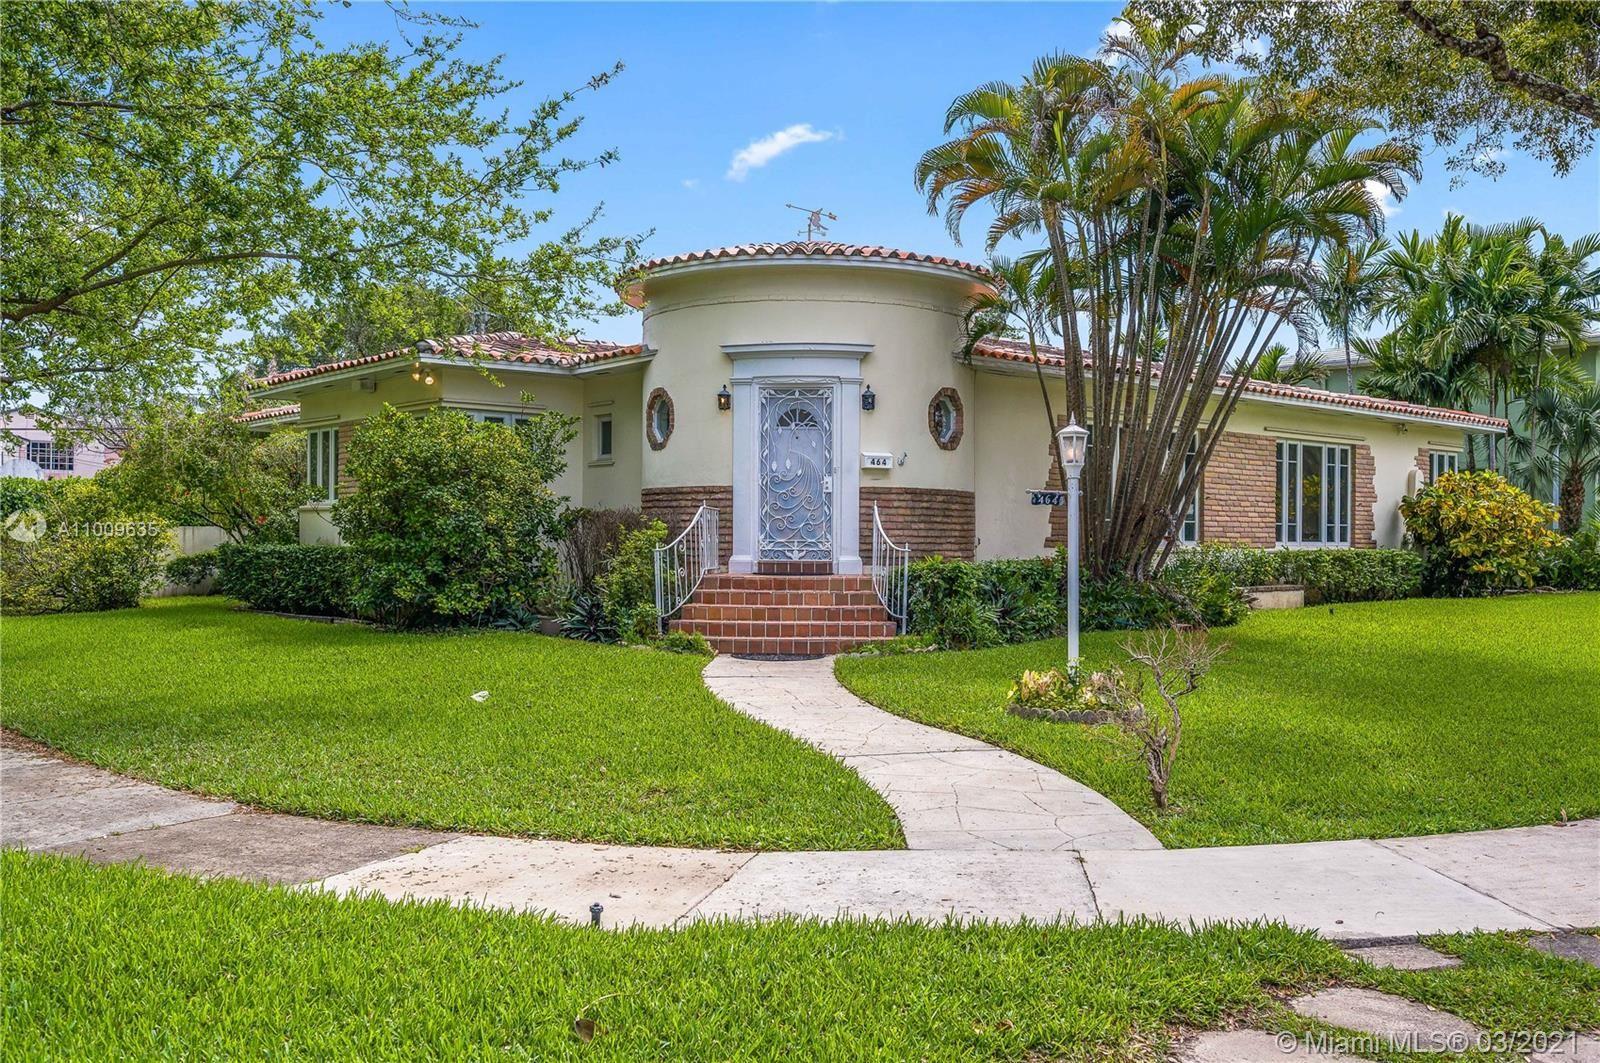 464 Grand Concourse, Miami Shores, FL 33138 - #: A11009635